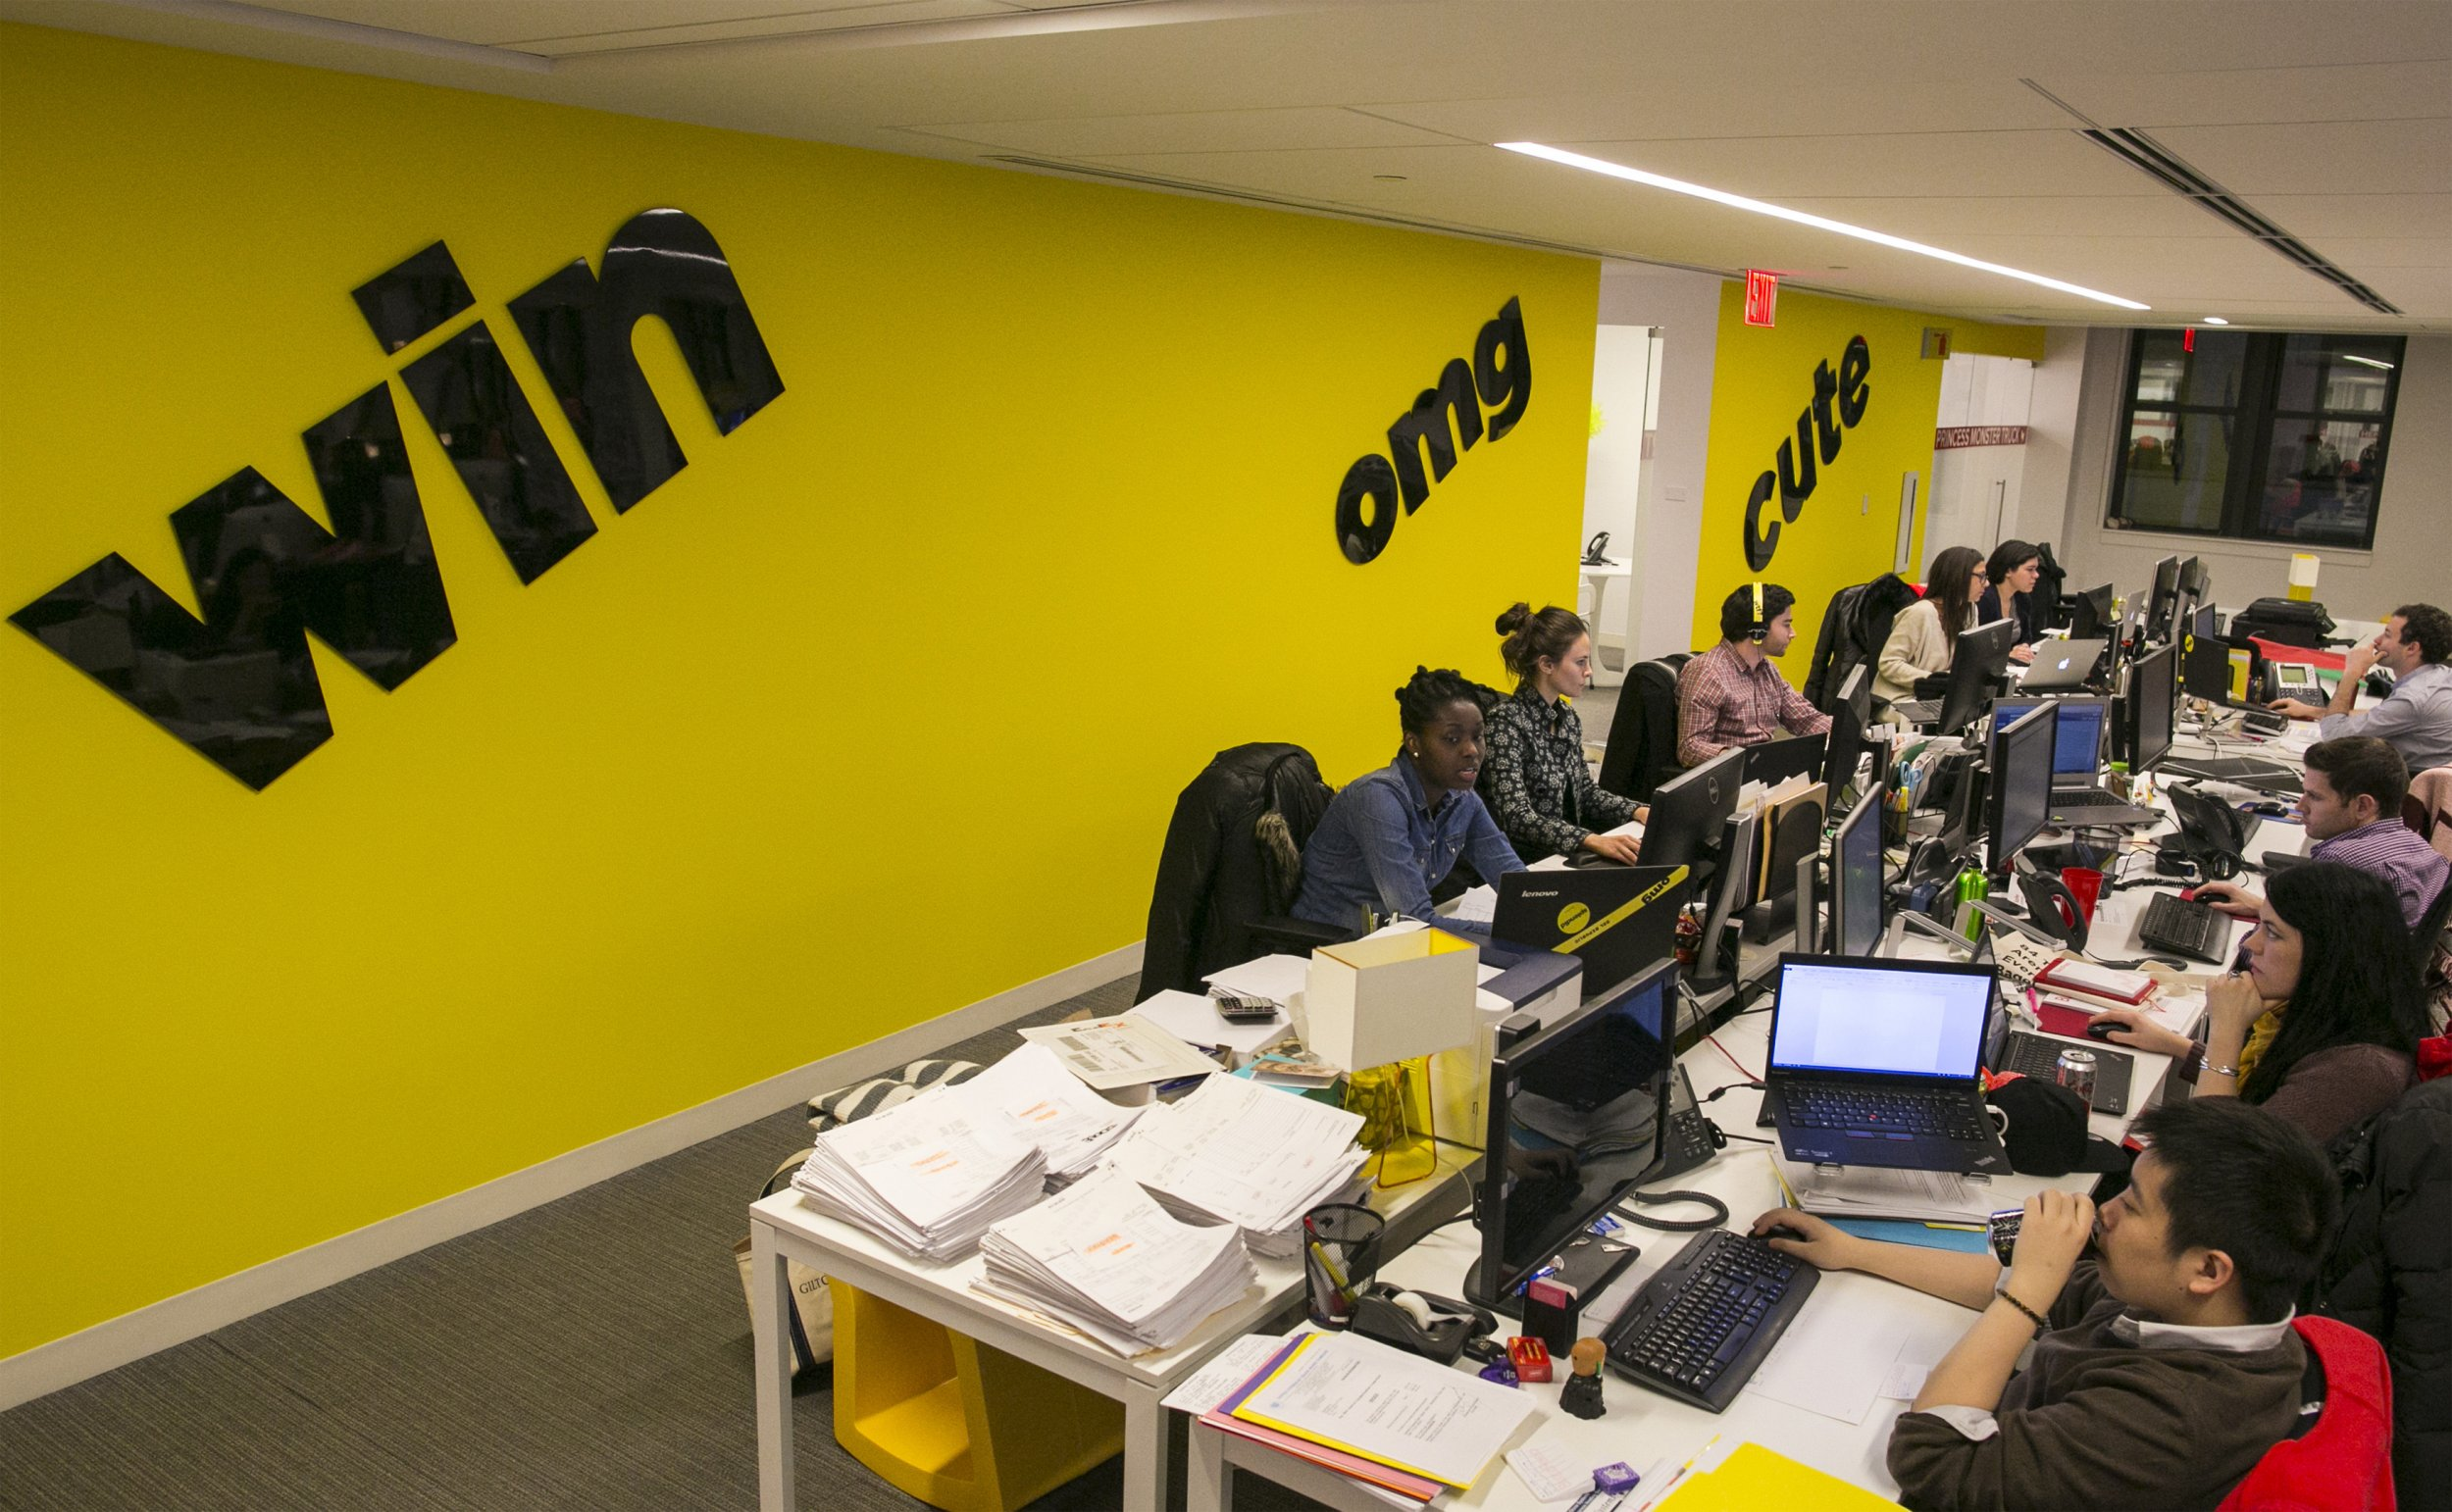 BuzzFeed's headquarters in New York.